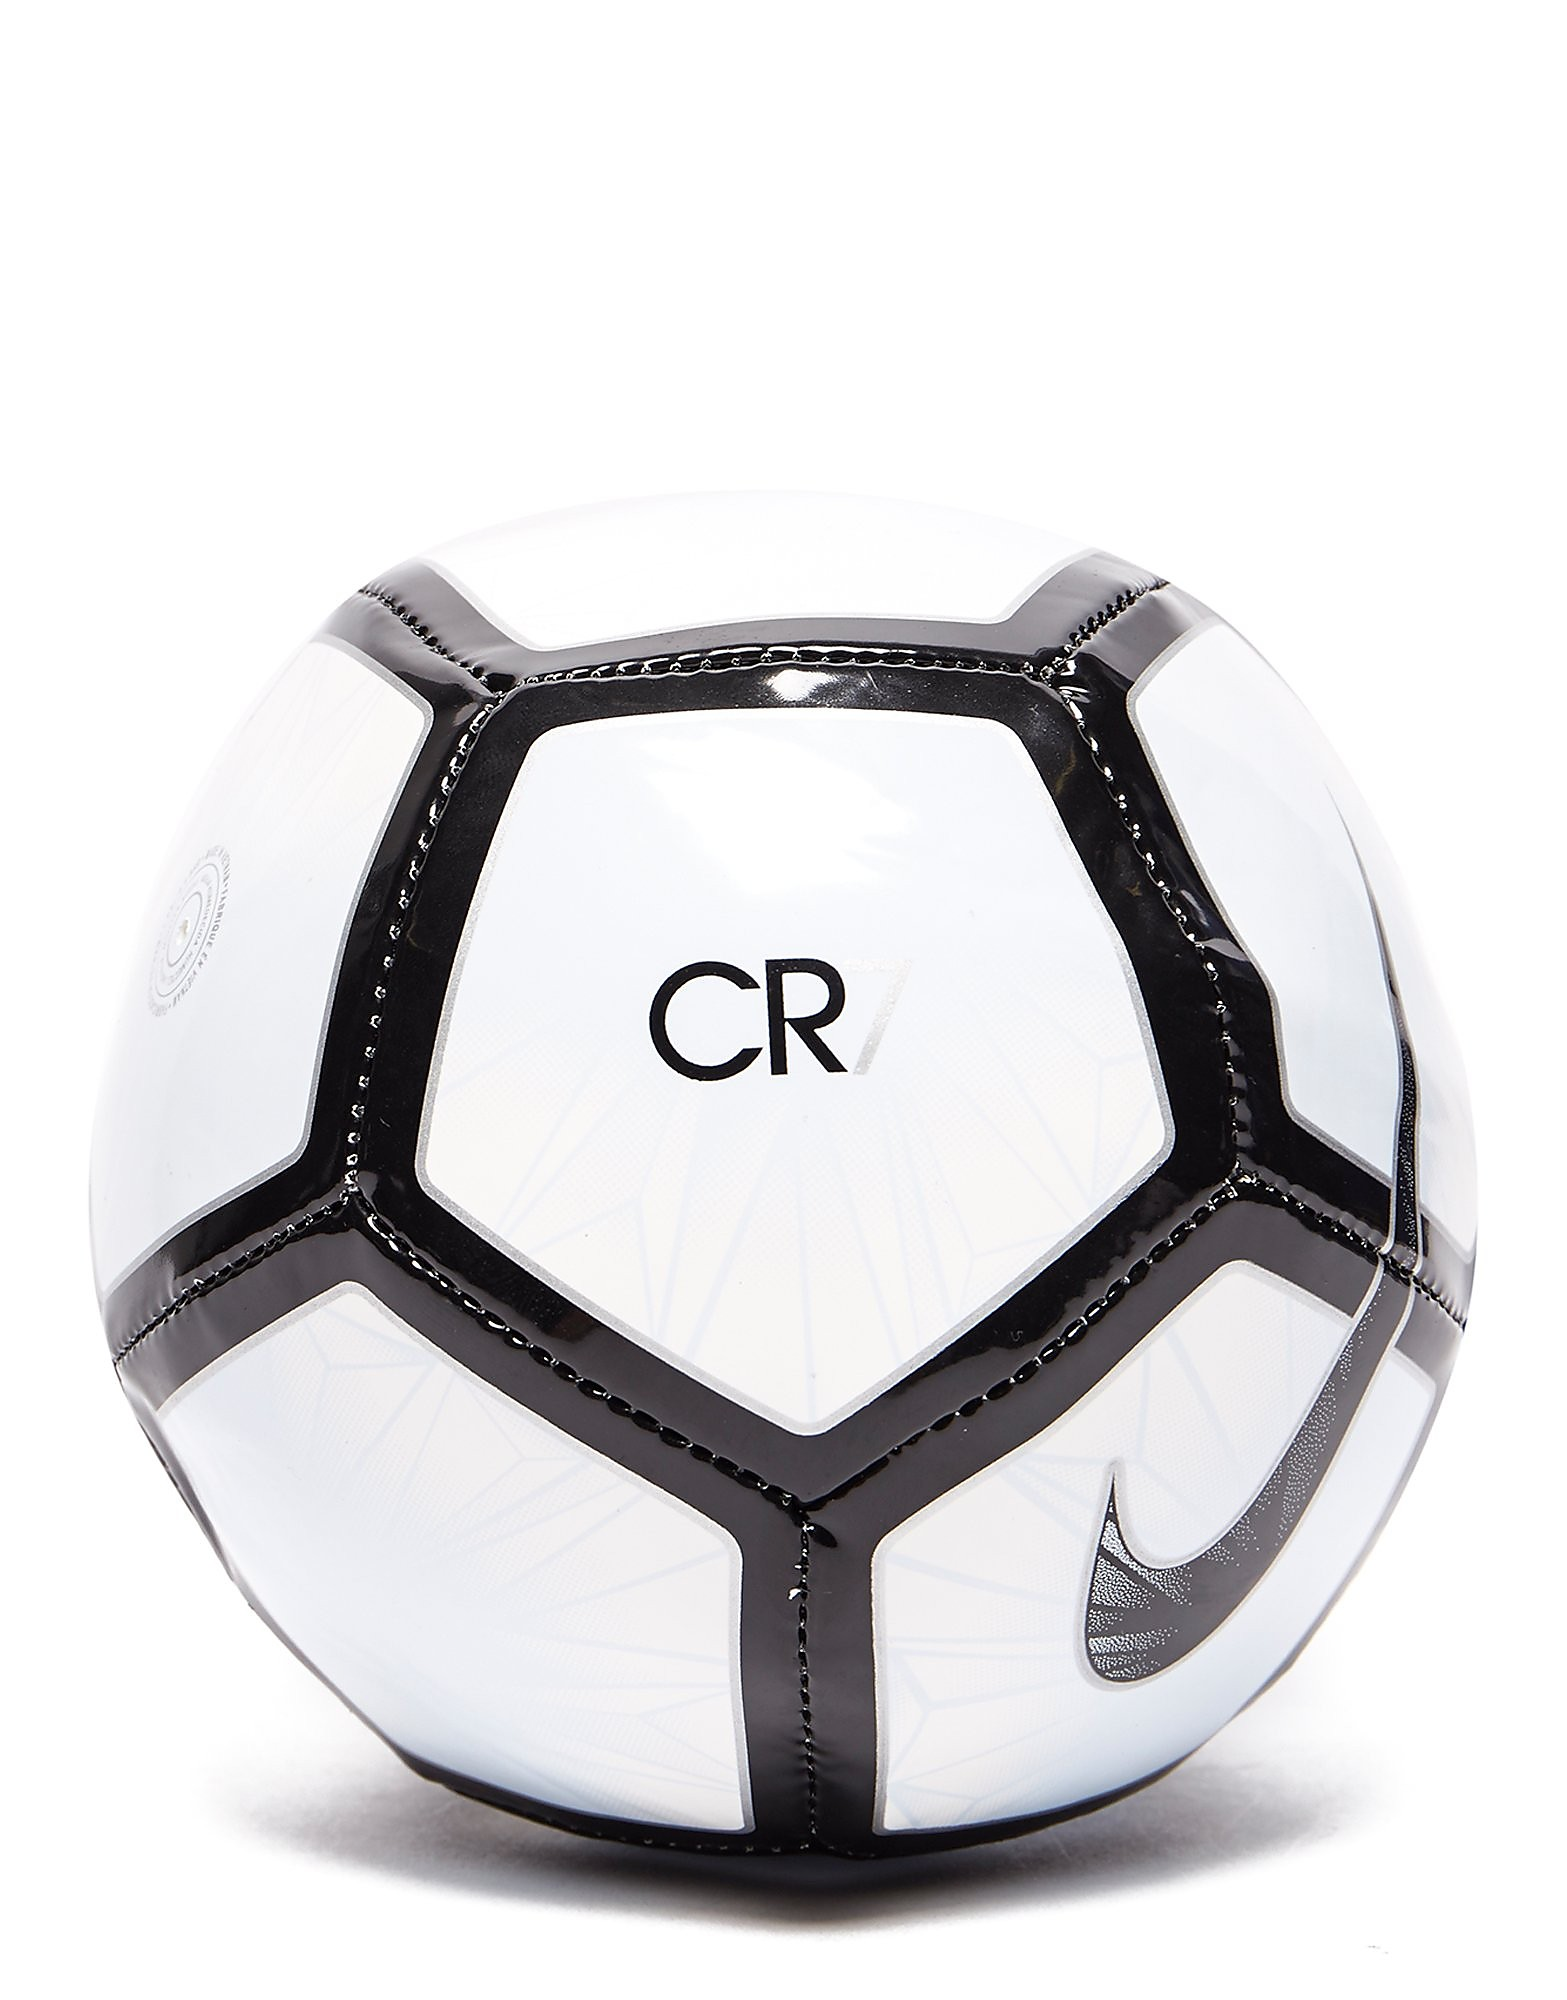 Nike Mini CR7 Football